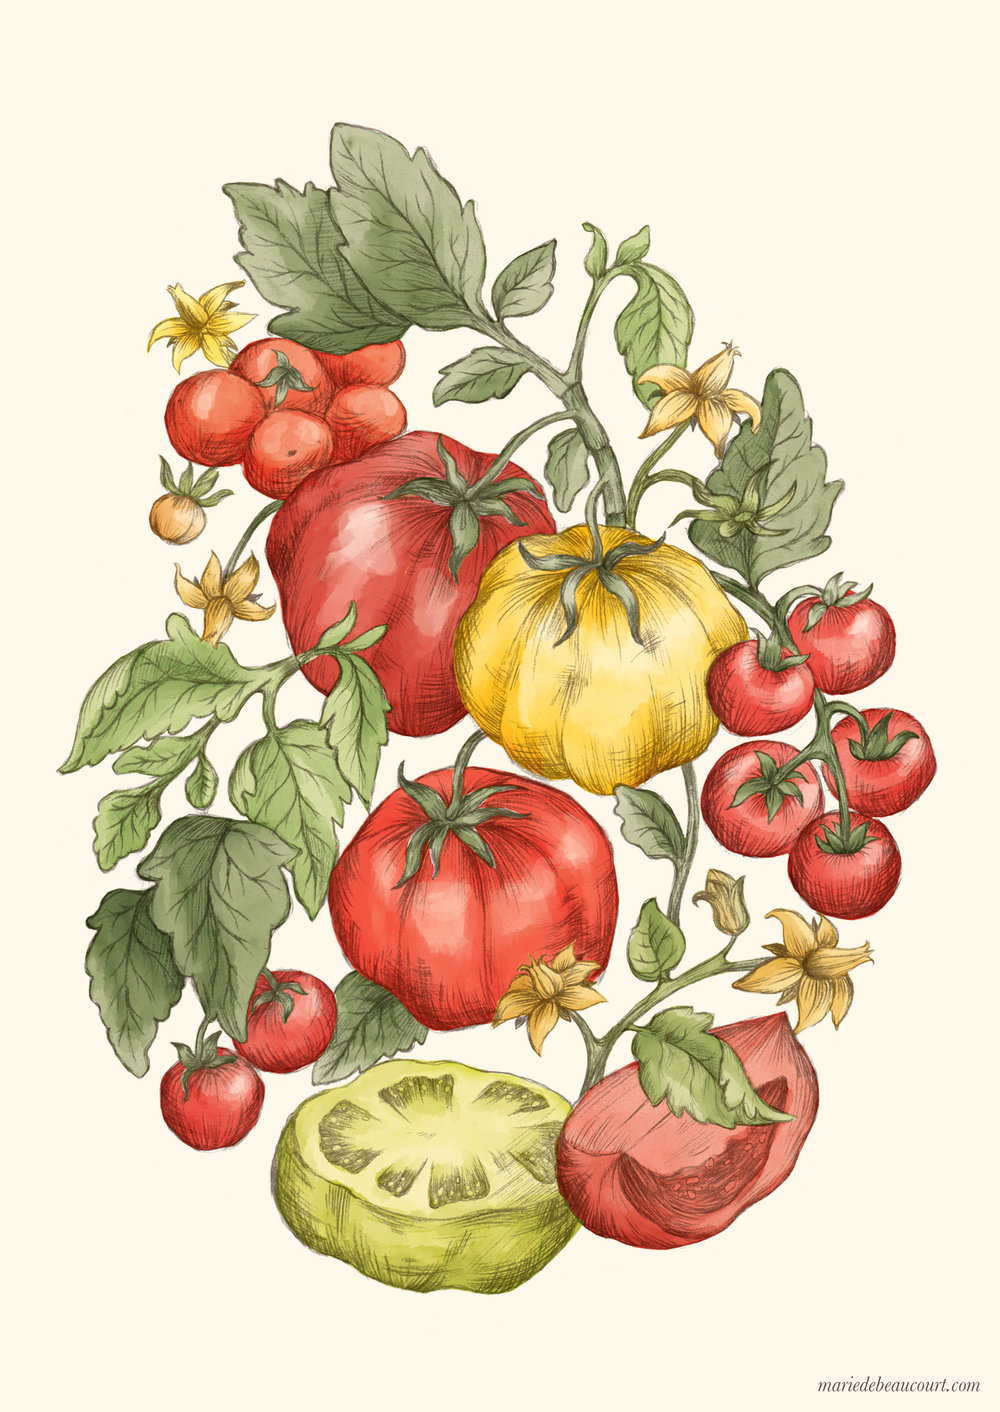 Marie-de-Beaucourt-illustration-editorial-Regain-ete2018-web-cover-tomatoes-vertical-wm.jpg